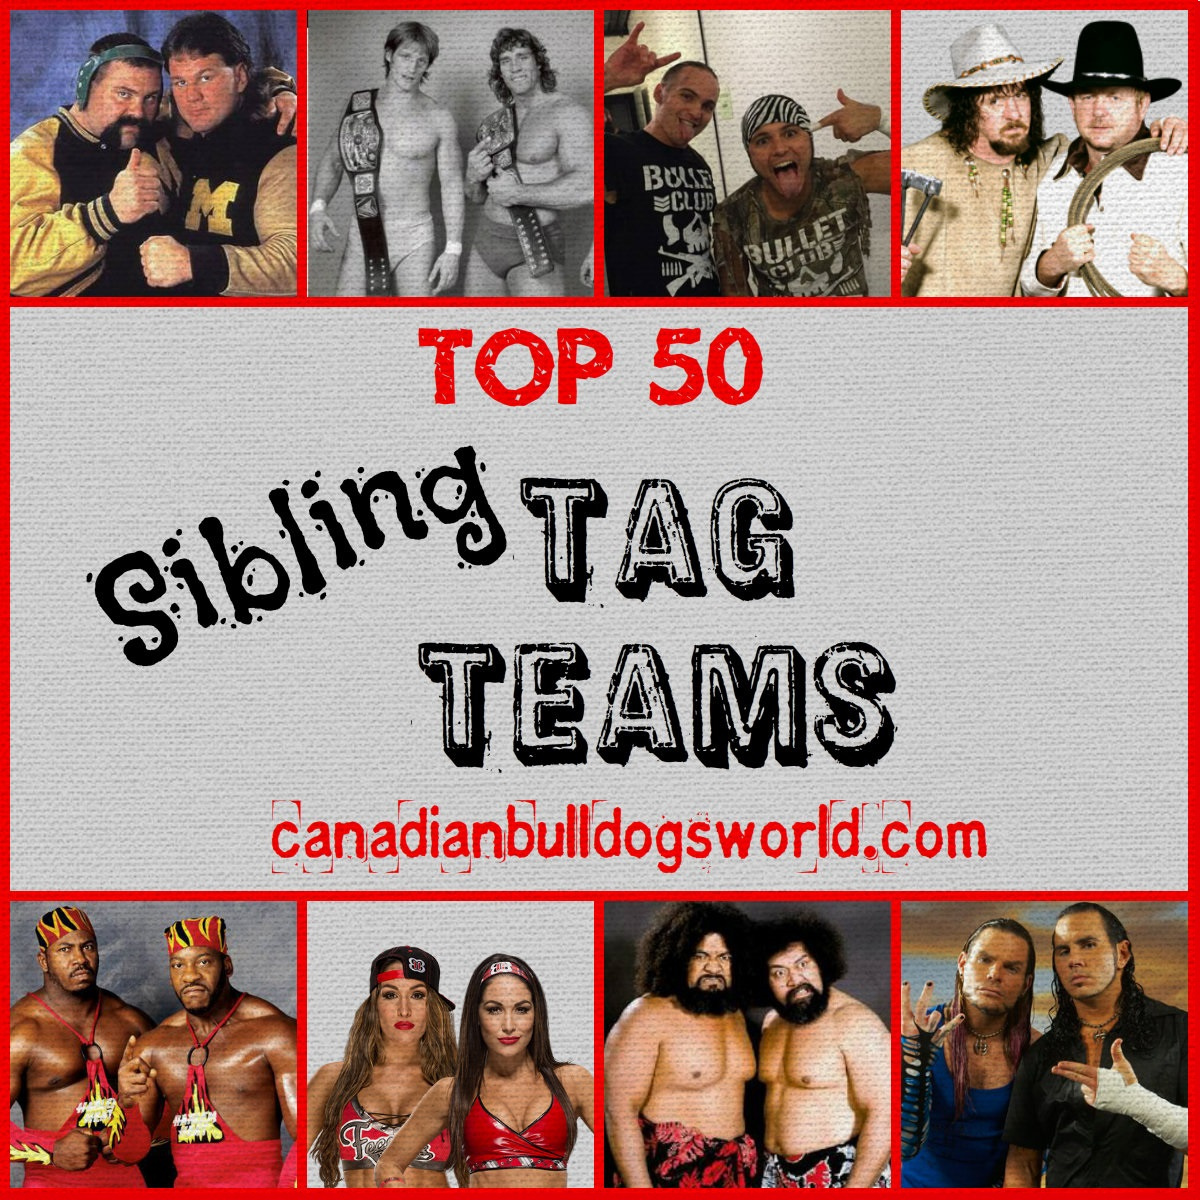 Top 50 Sibling Tag Teams